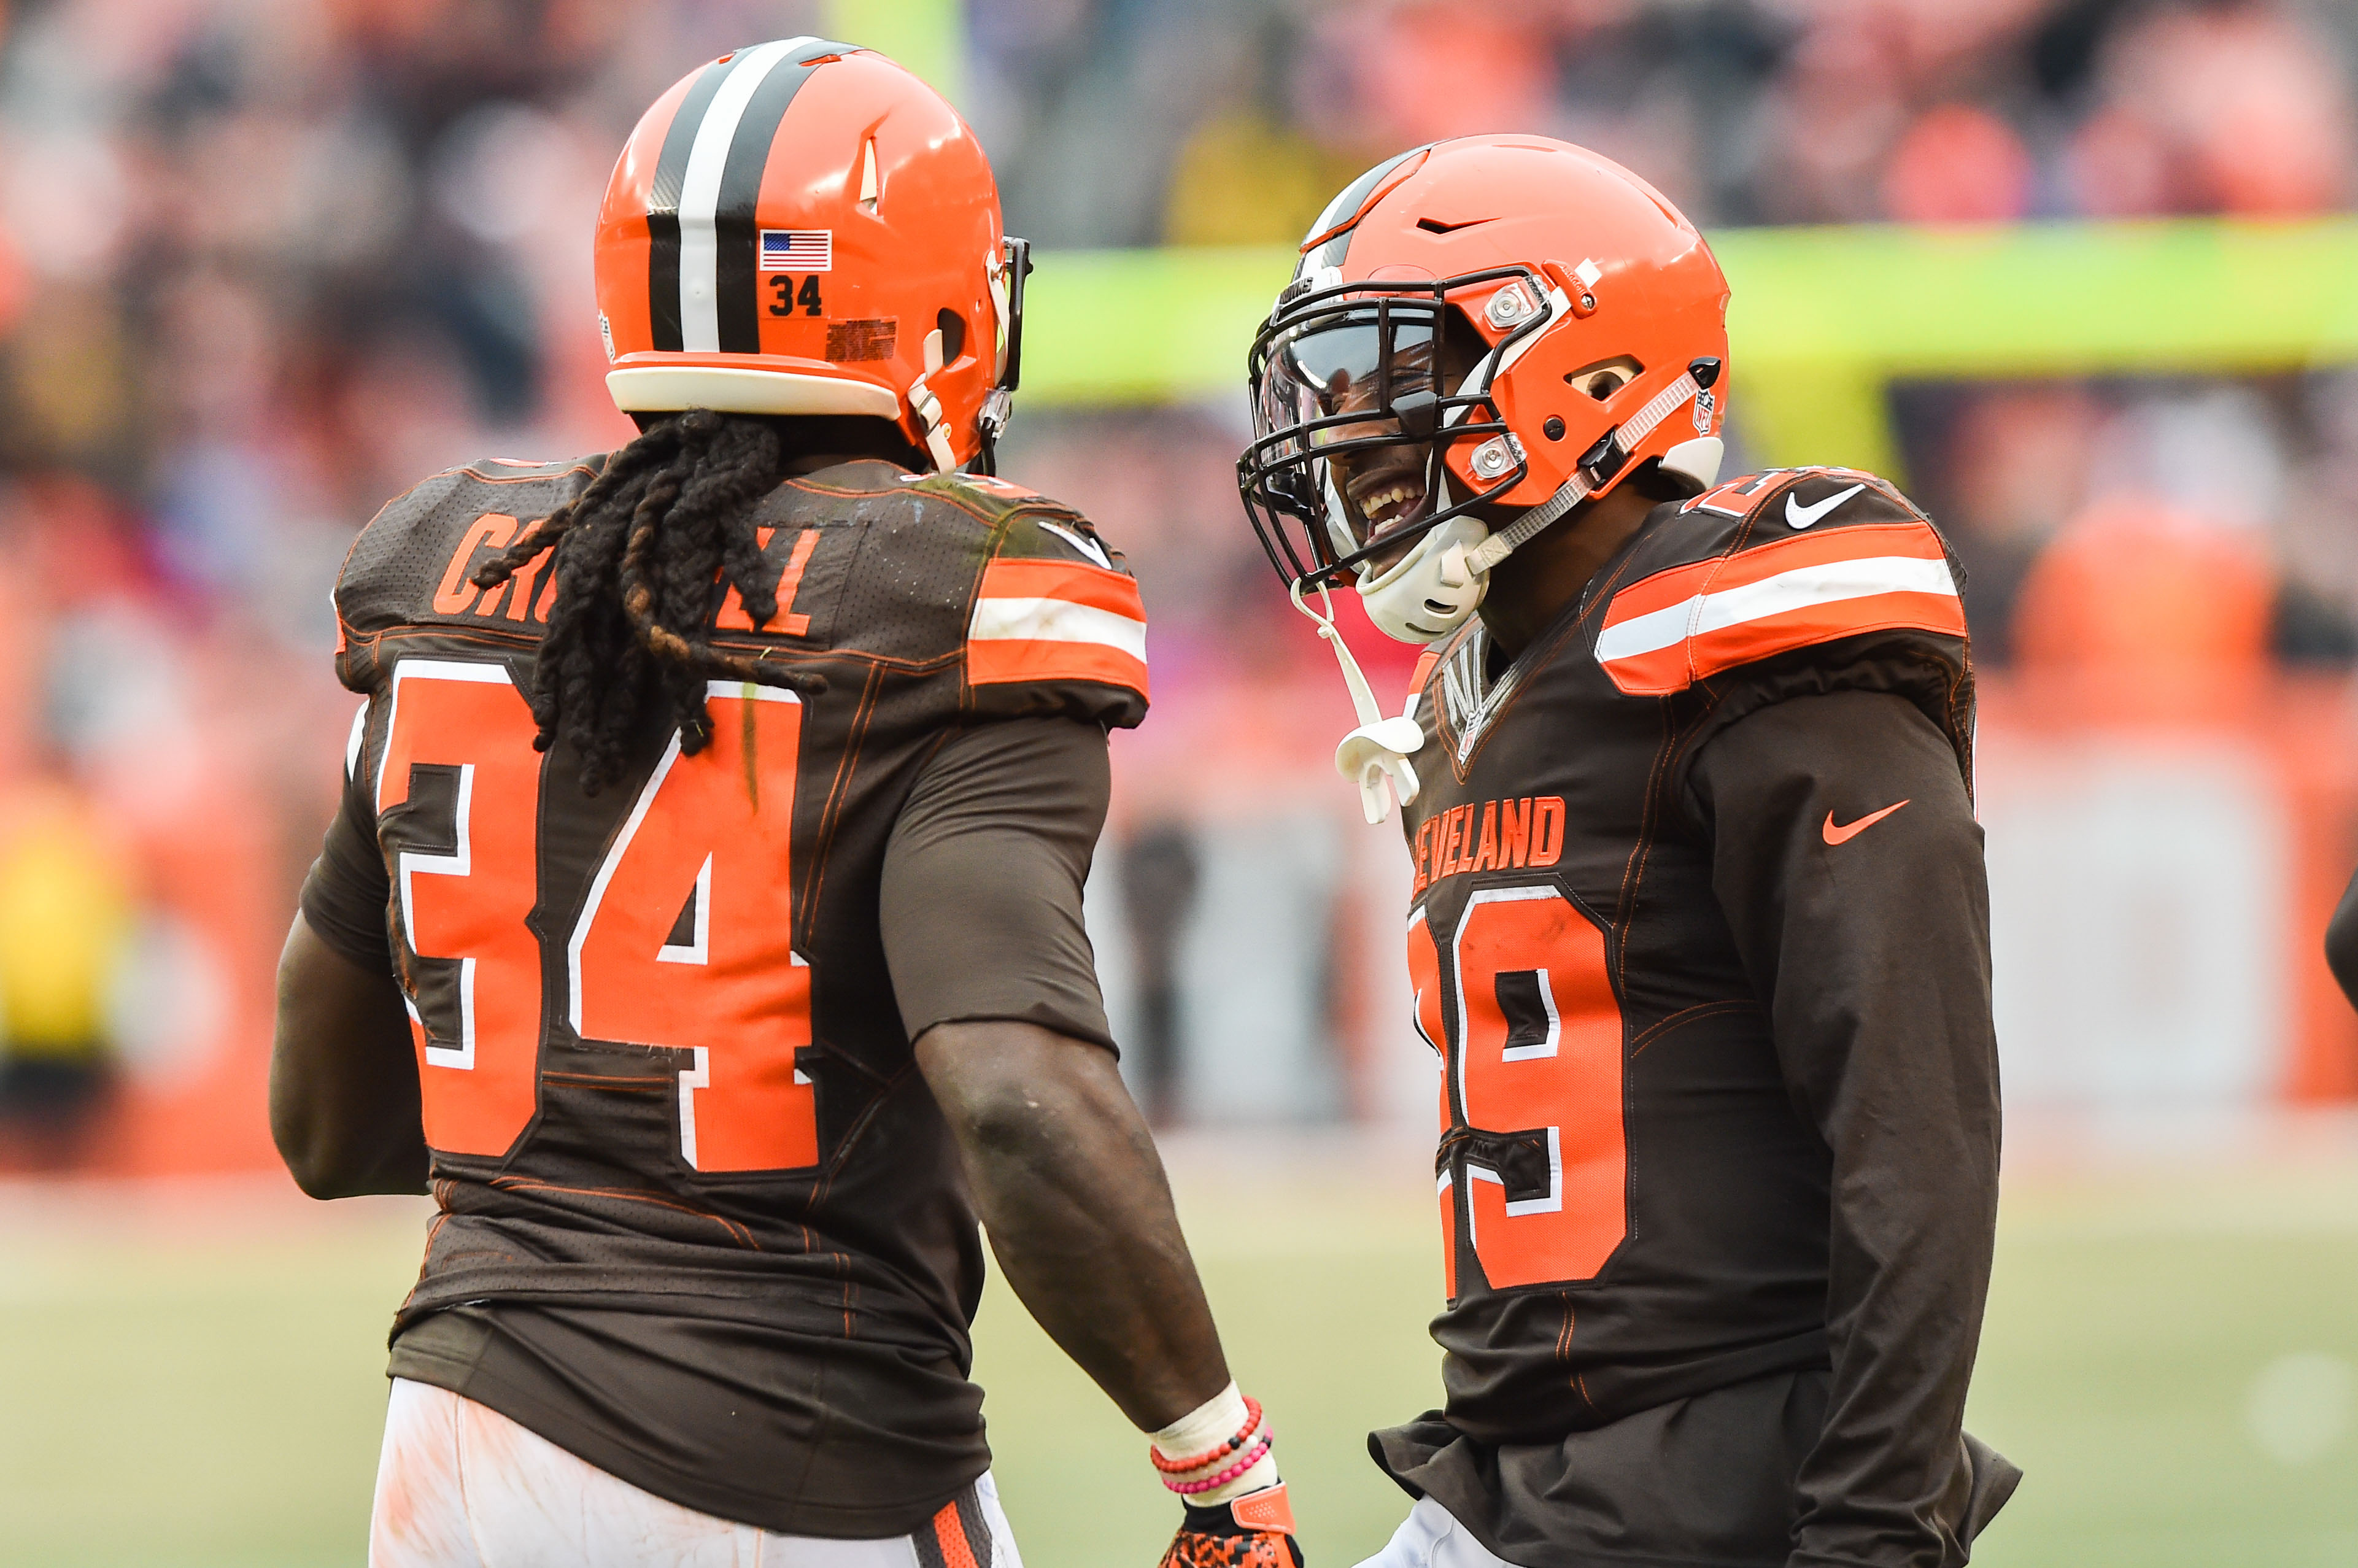 9776104-nfl-san-diego-chargers-at-cleveland-browns